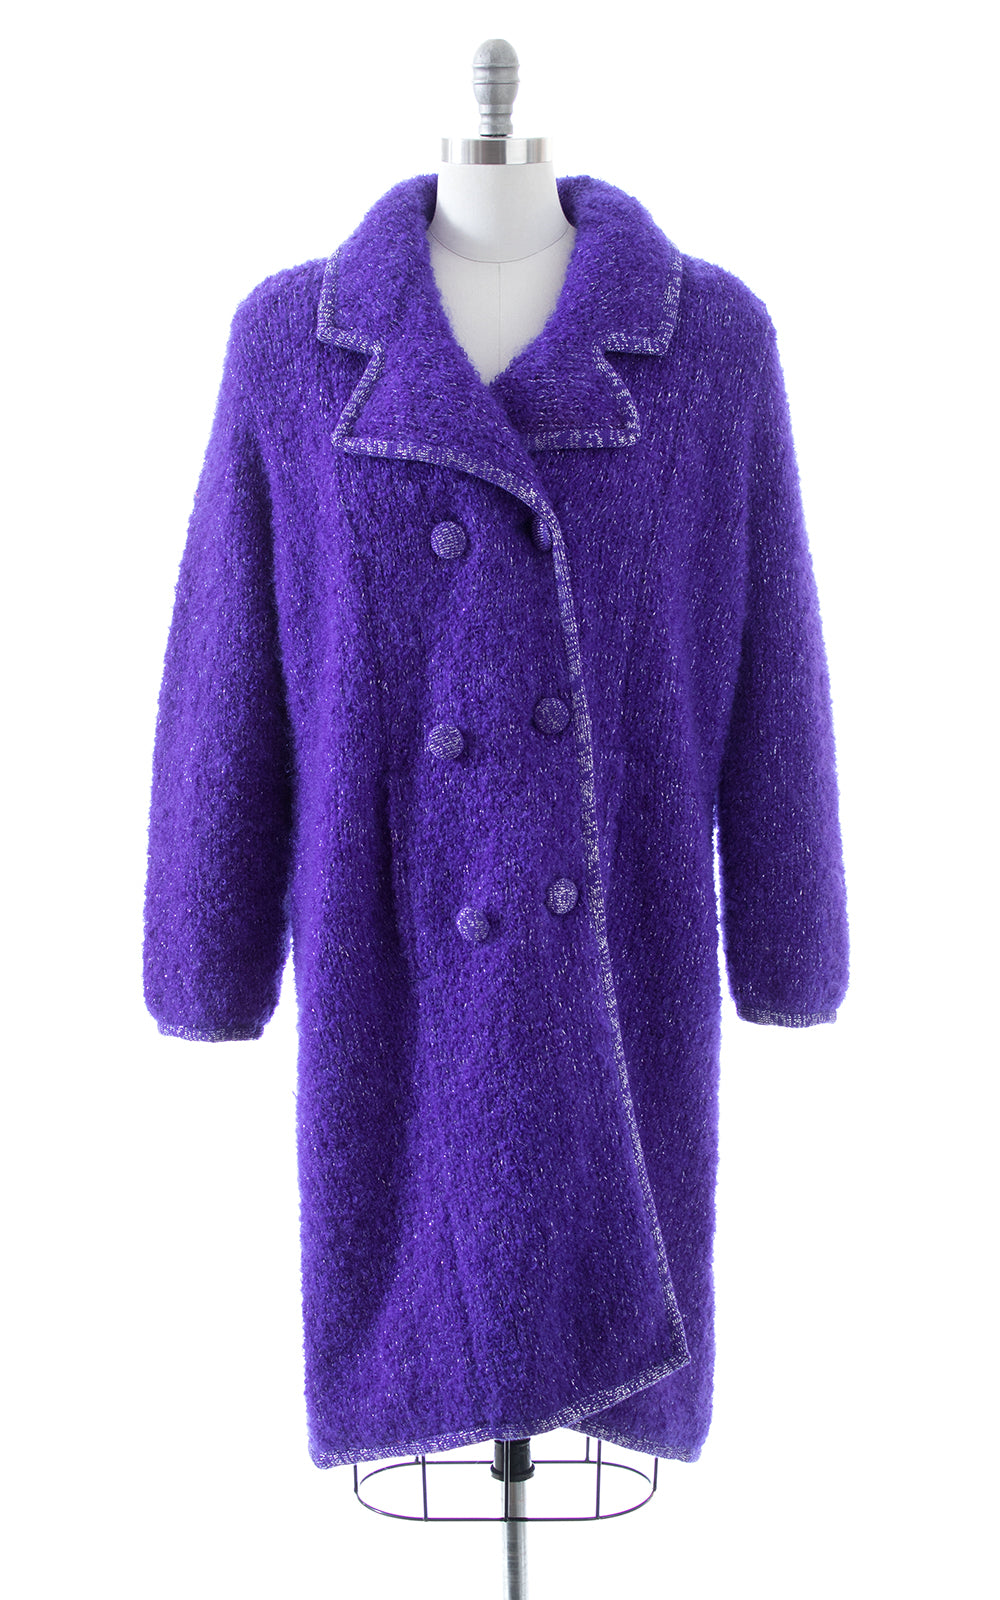 1960s Metallic Purple Wool Sweater Coat